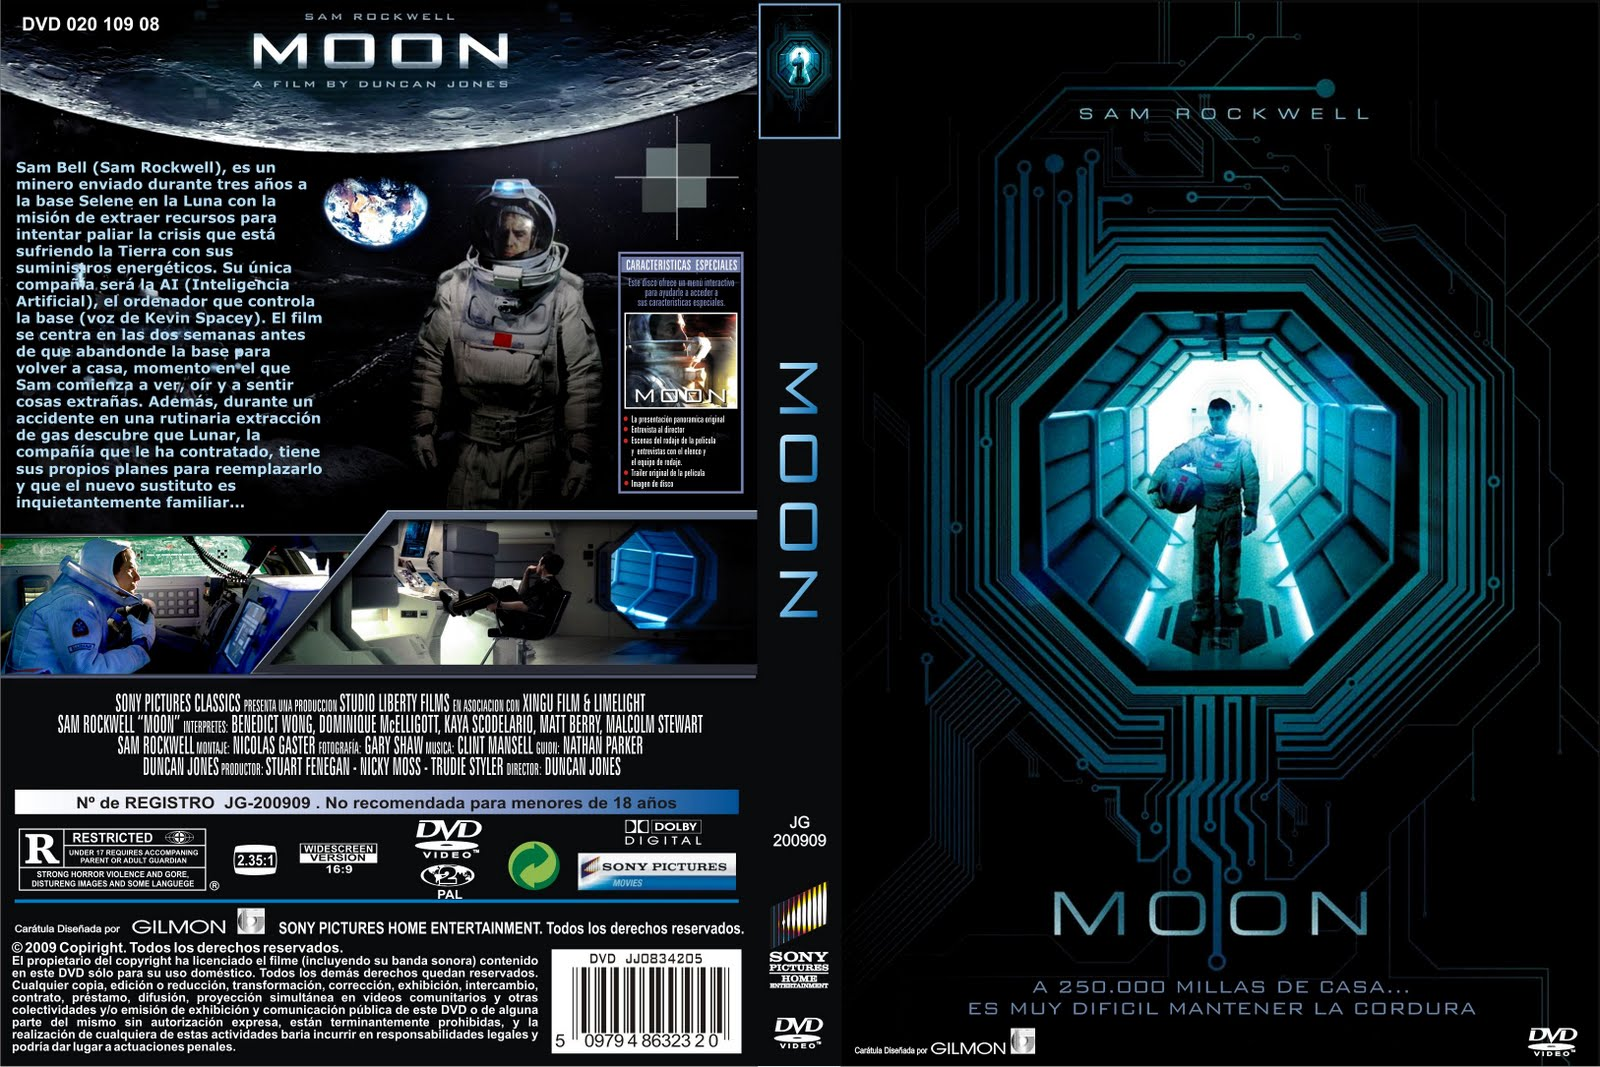 Moon_-_Custom_-_V2_por_JhonGilmon_[dvd]_80